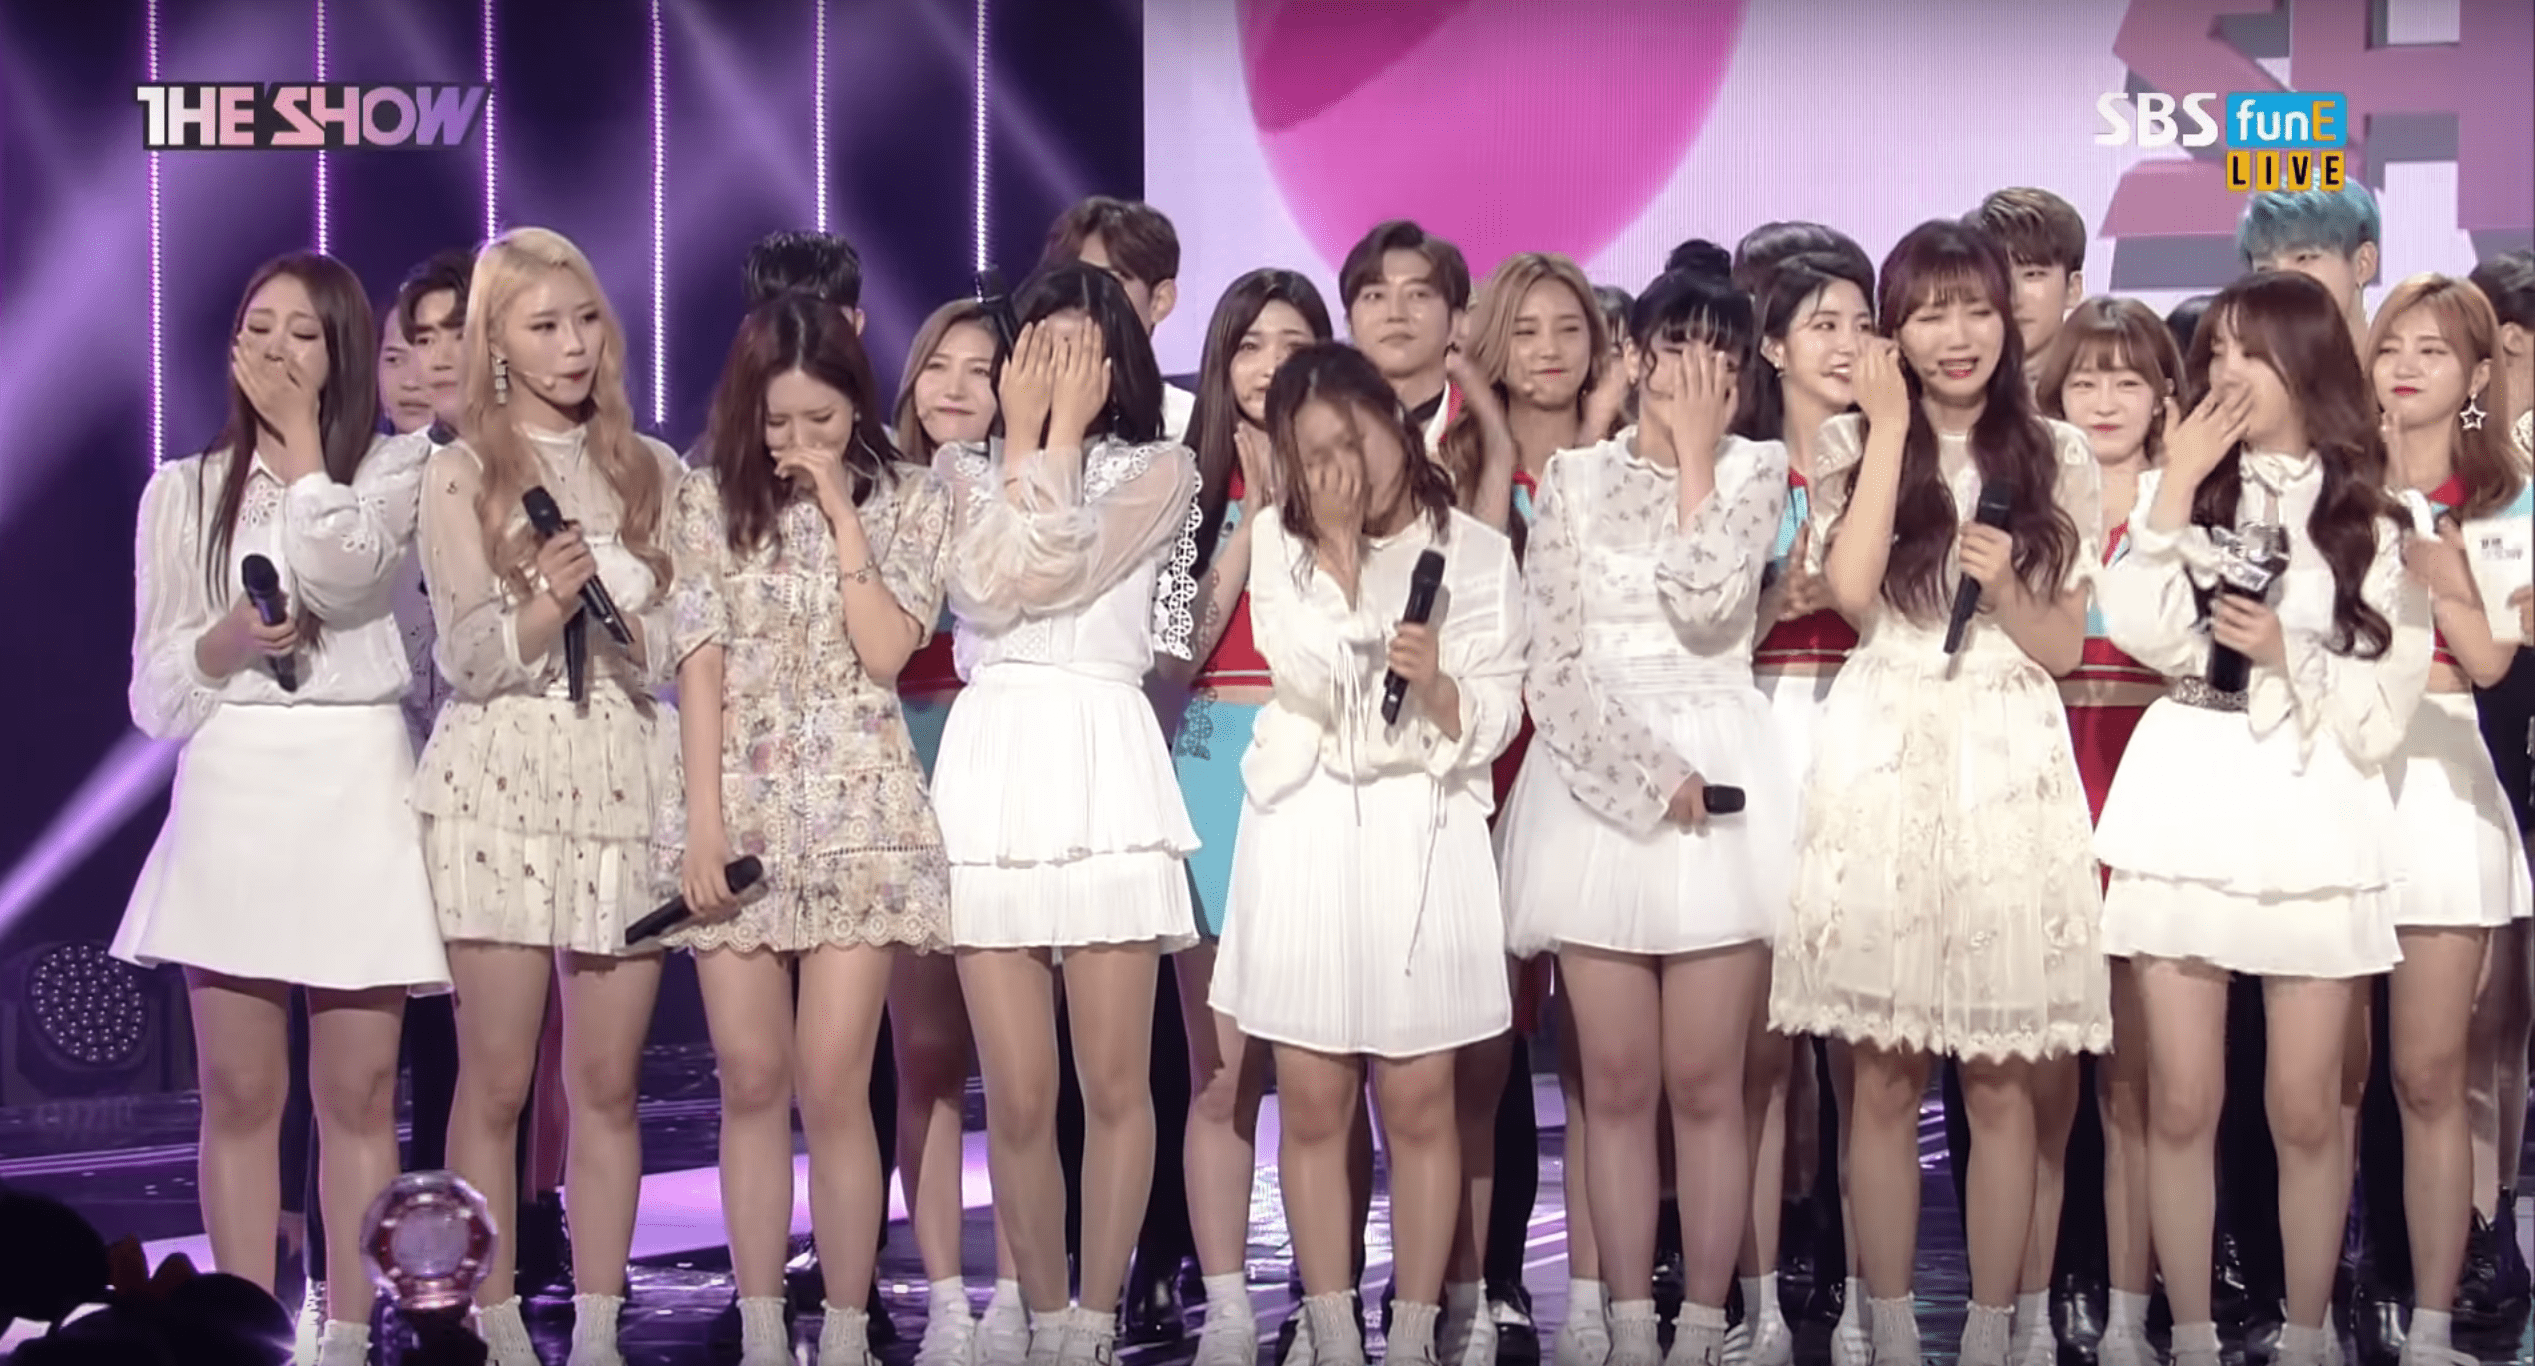 Watch: Lovelyz Takes Their 1st Ever Win On The Show With Now, We, Performances By DIA, PRISTIN, LABOUM, And More